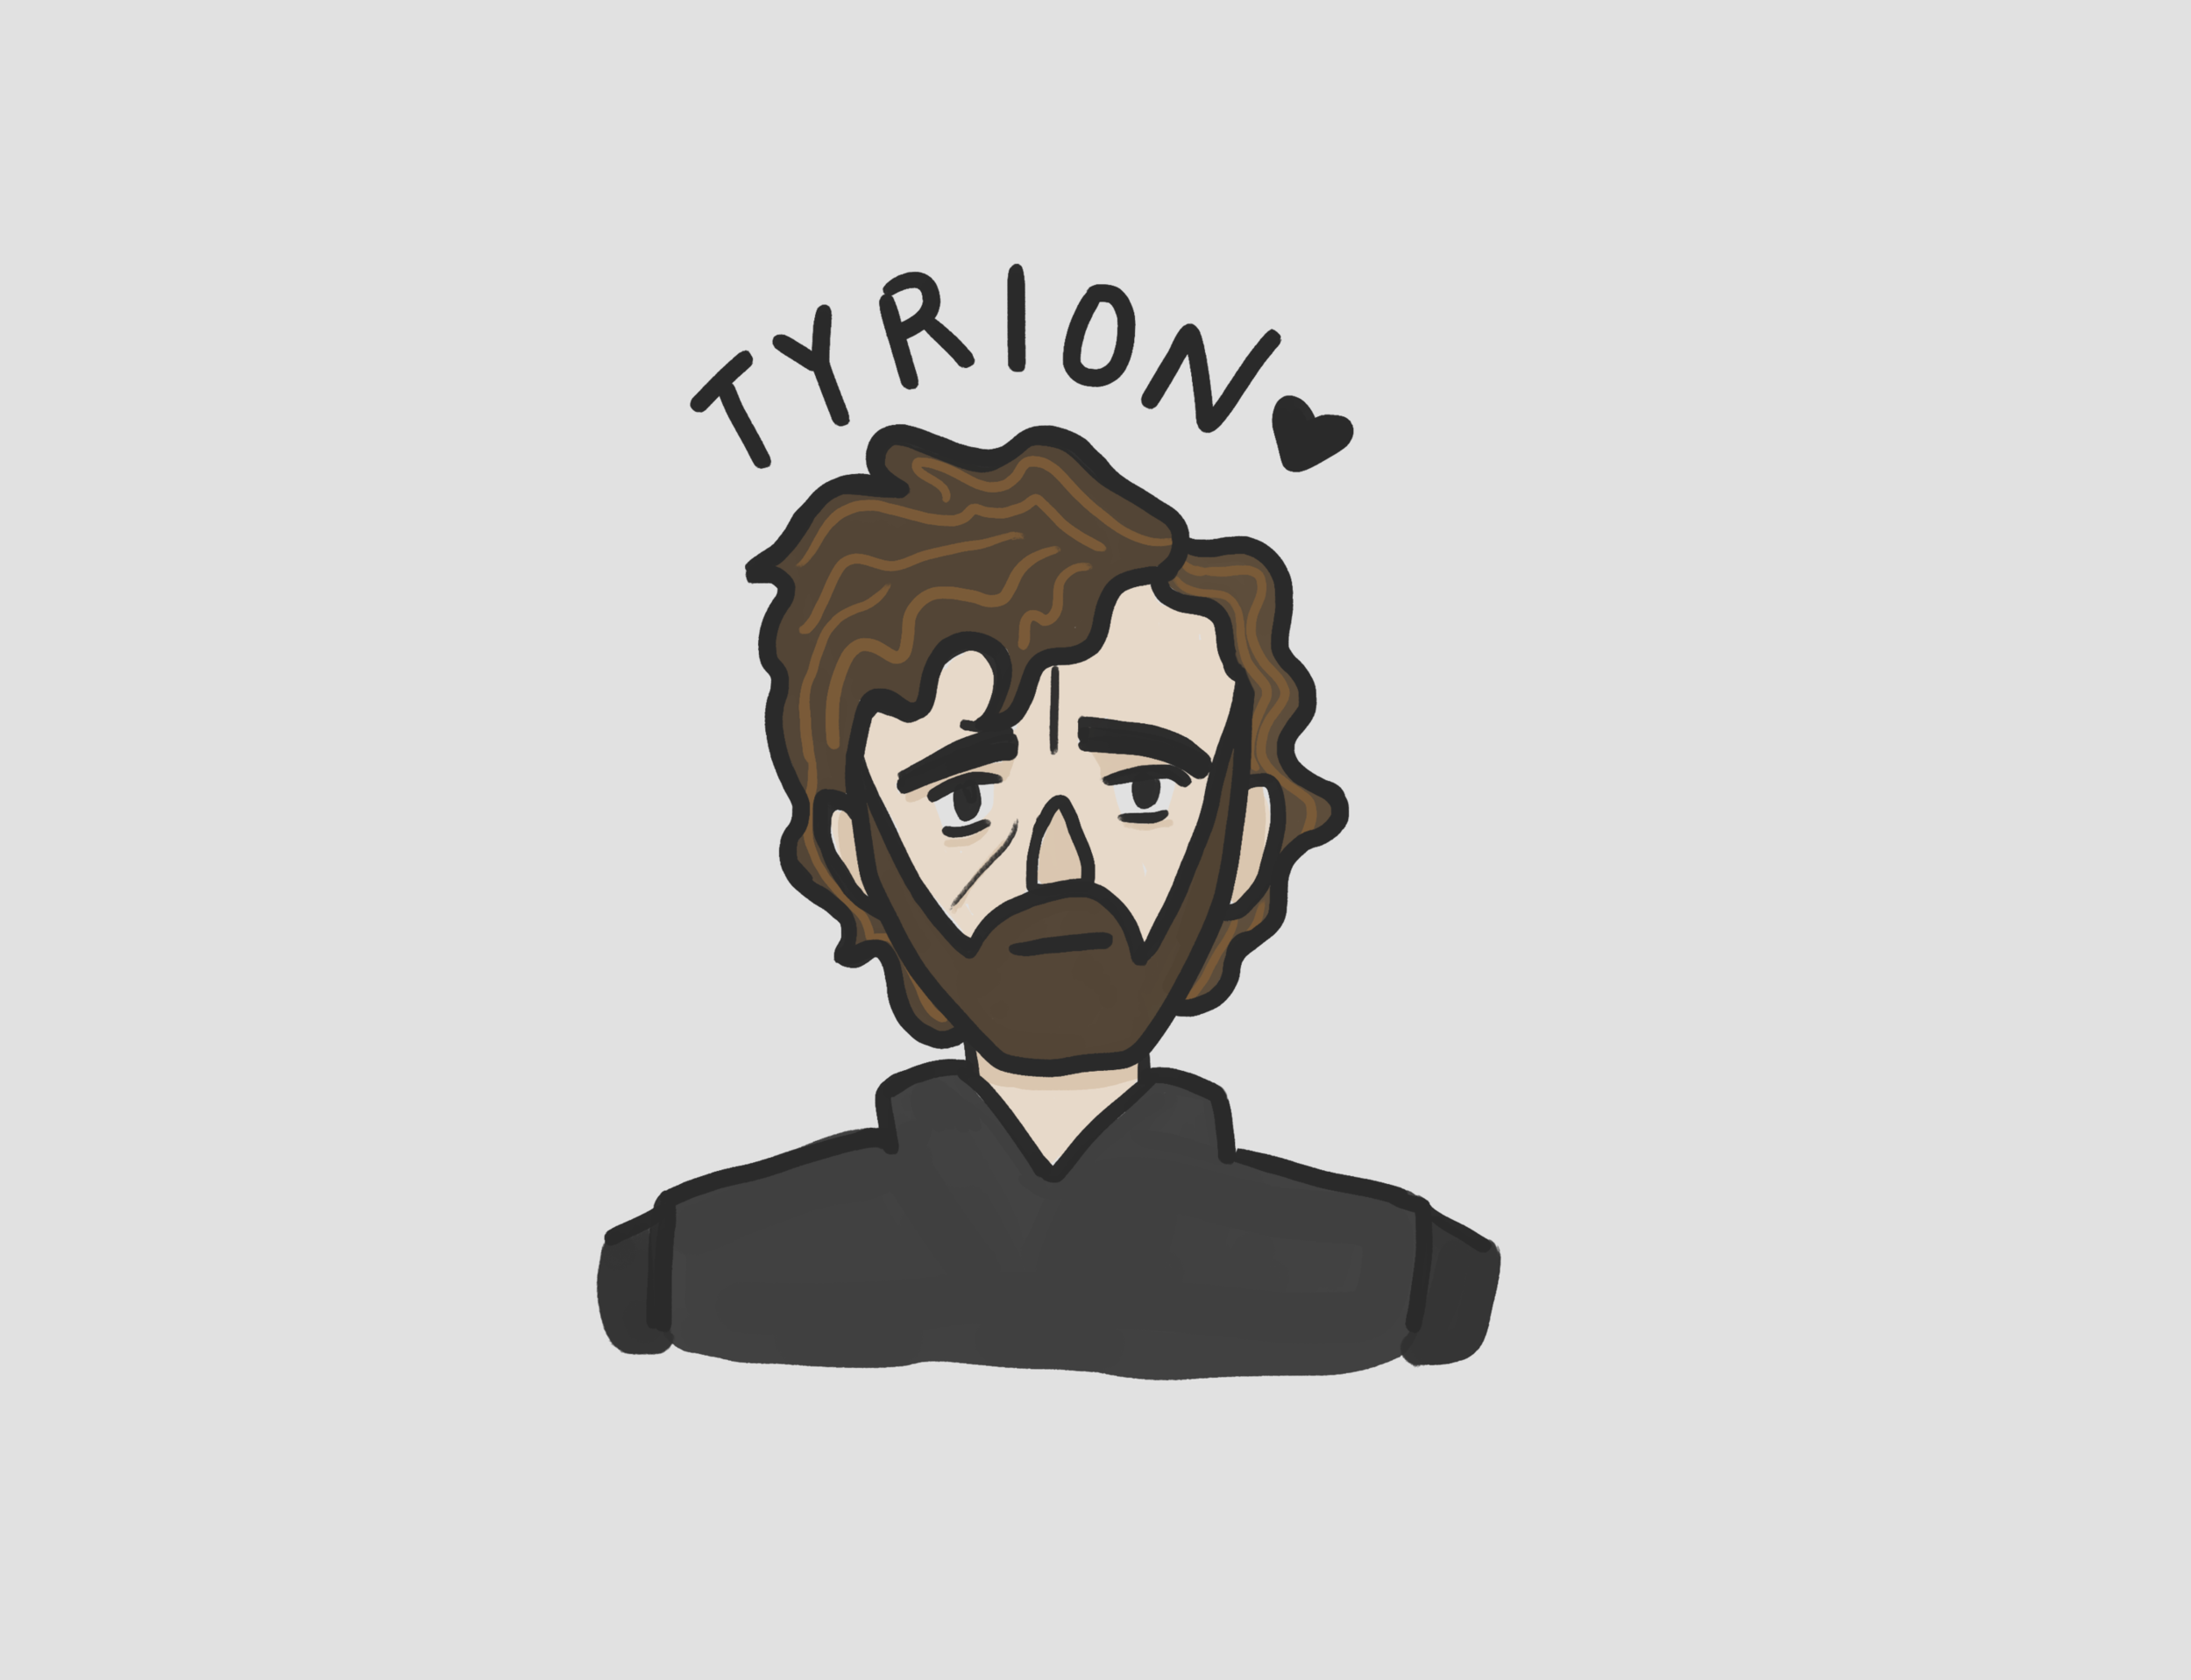 71 tyrion.png